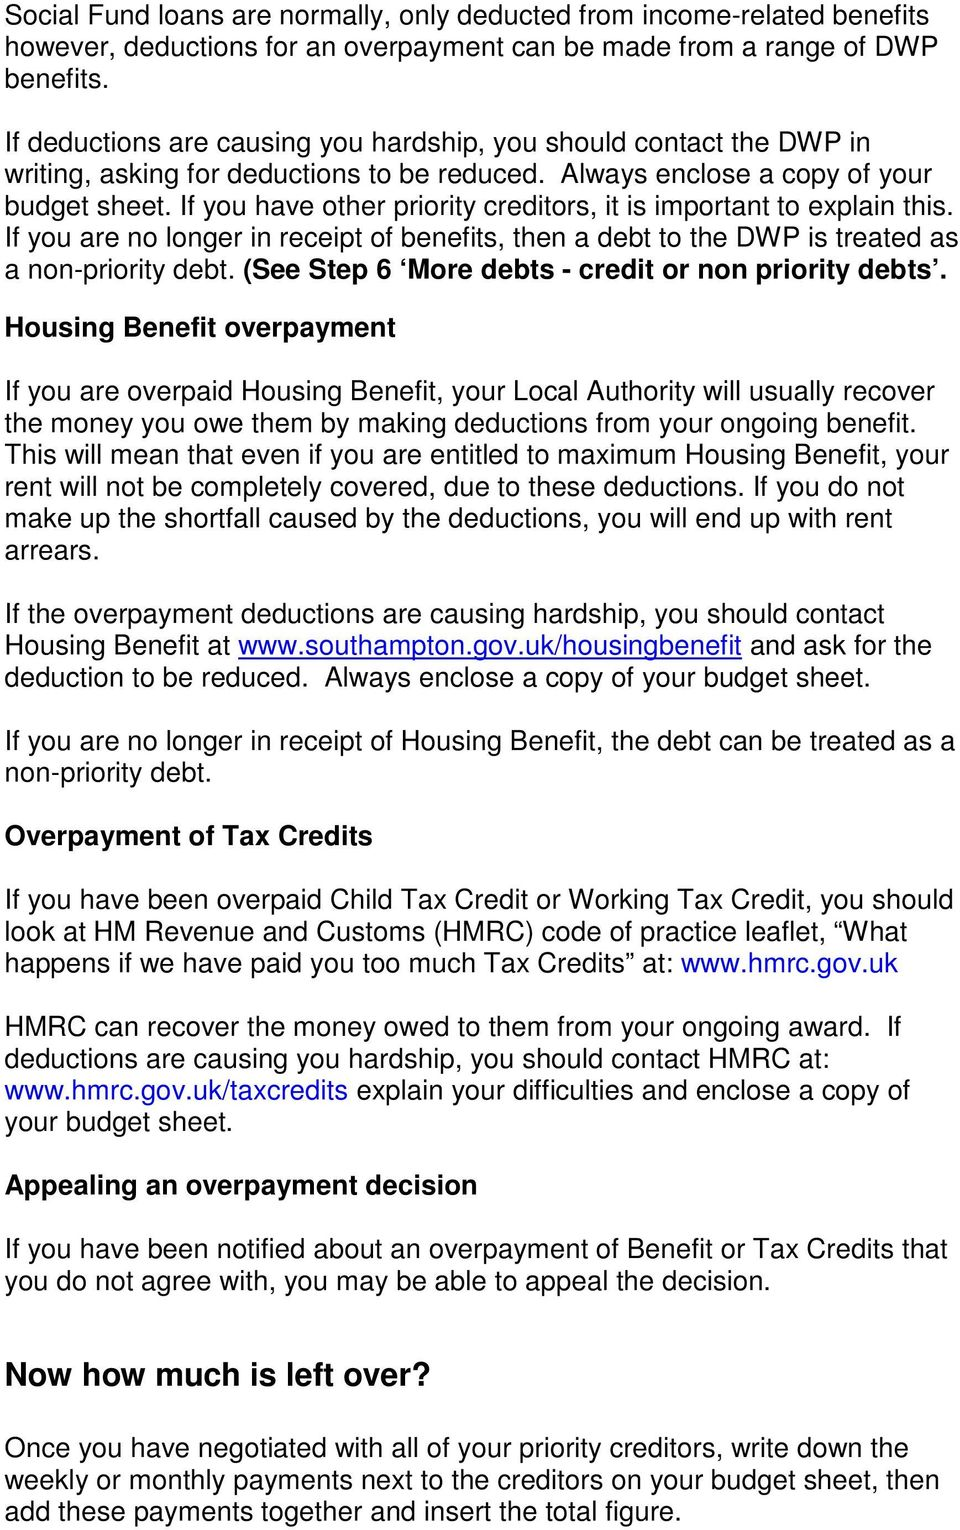 If you have other priority creditors, it is important to explain this. If you are no longer in receipt of benefits, then a debt to the DWP is treated as a non-priority debt.